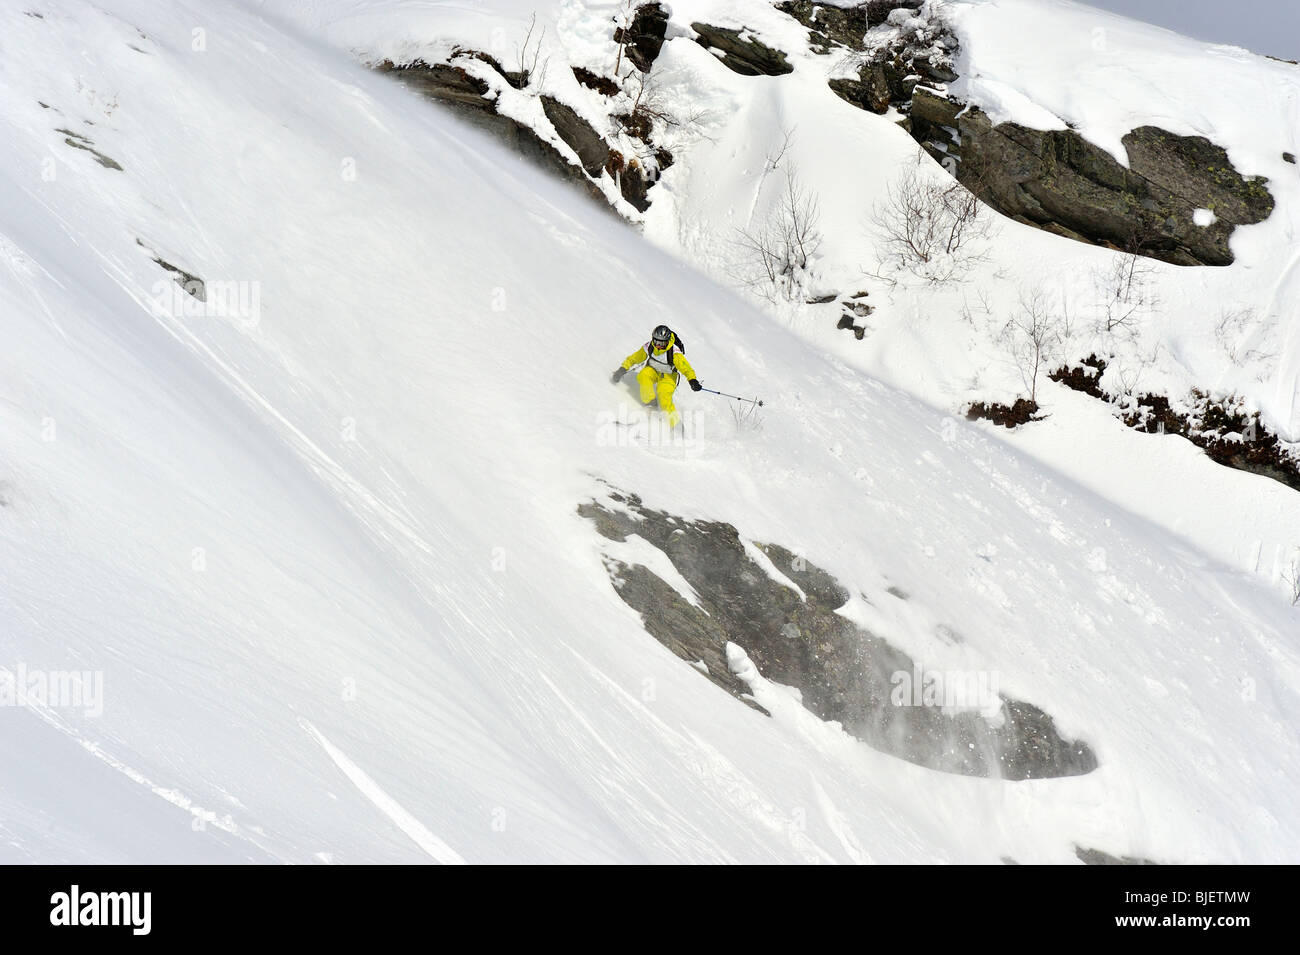 A free ride skier at Voss resort Norway - Stock Image